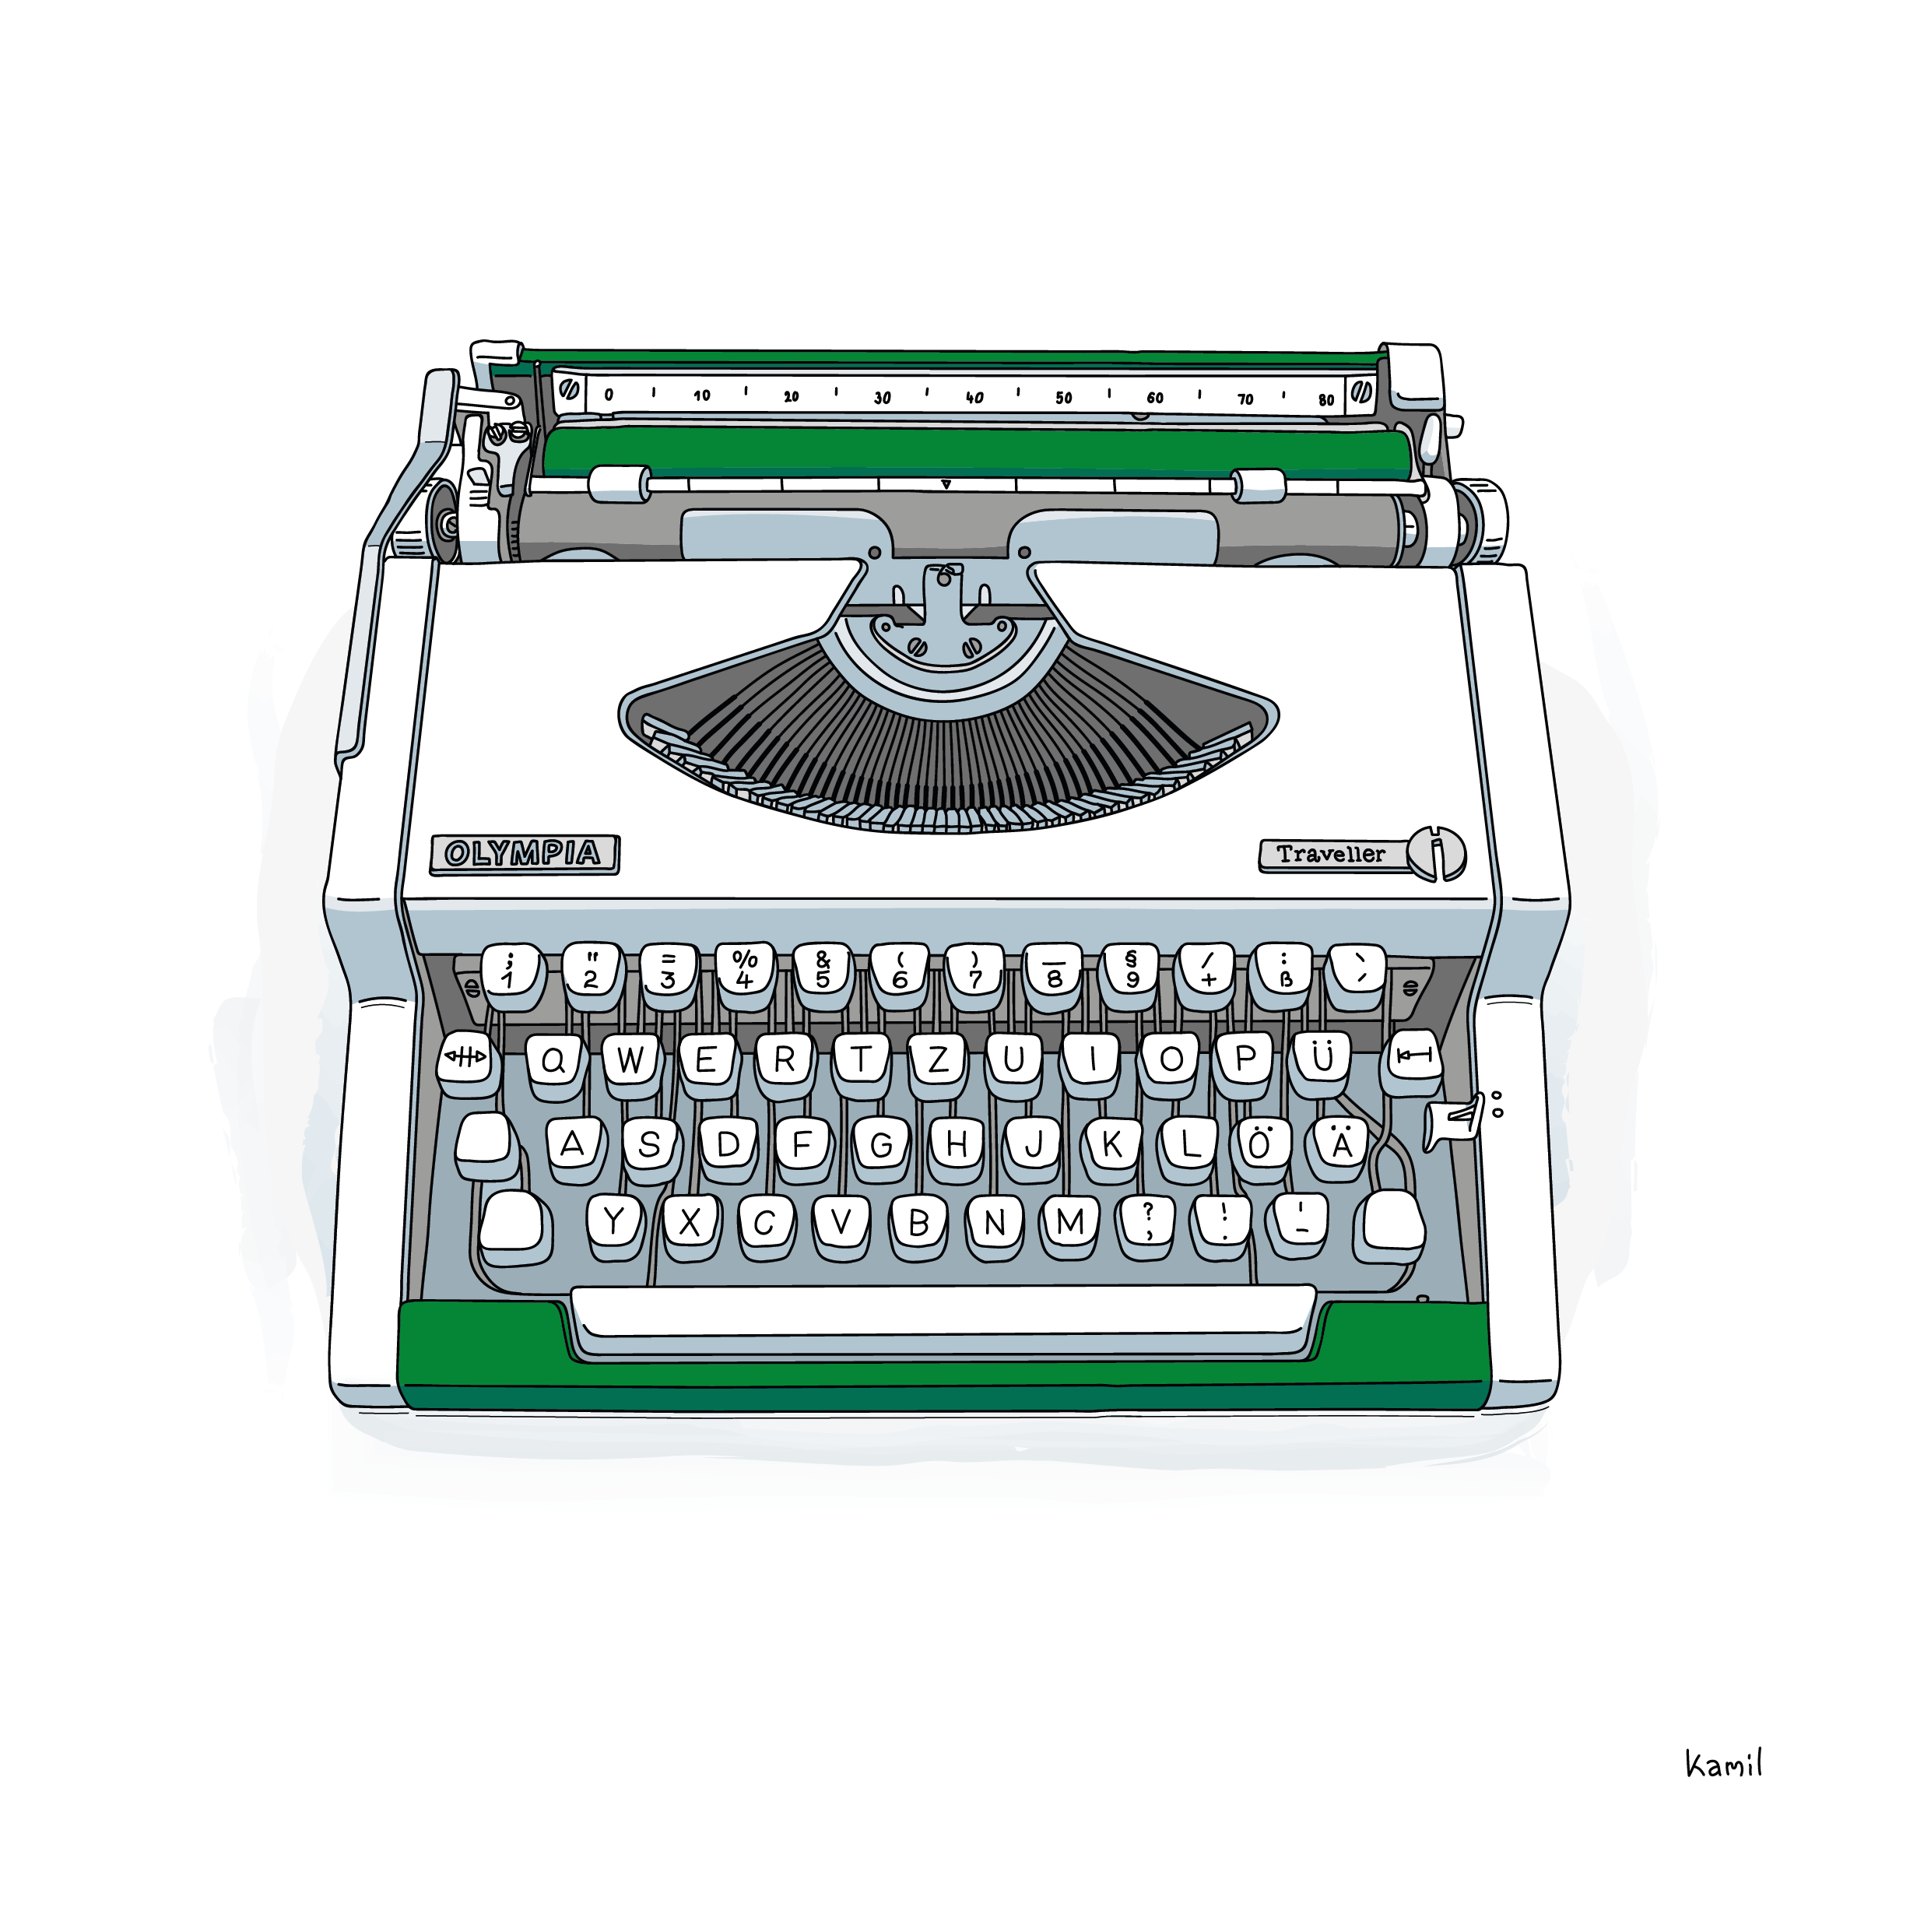 typewriter illustration in black outlines and colored